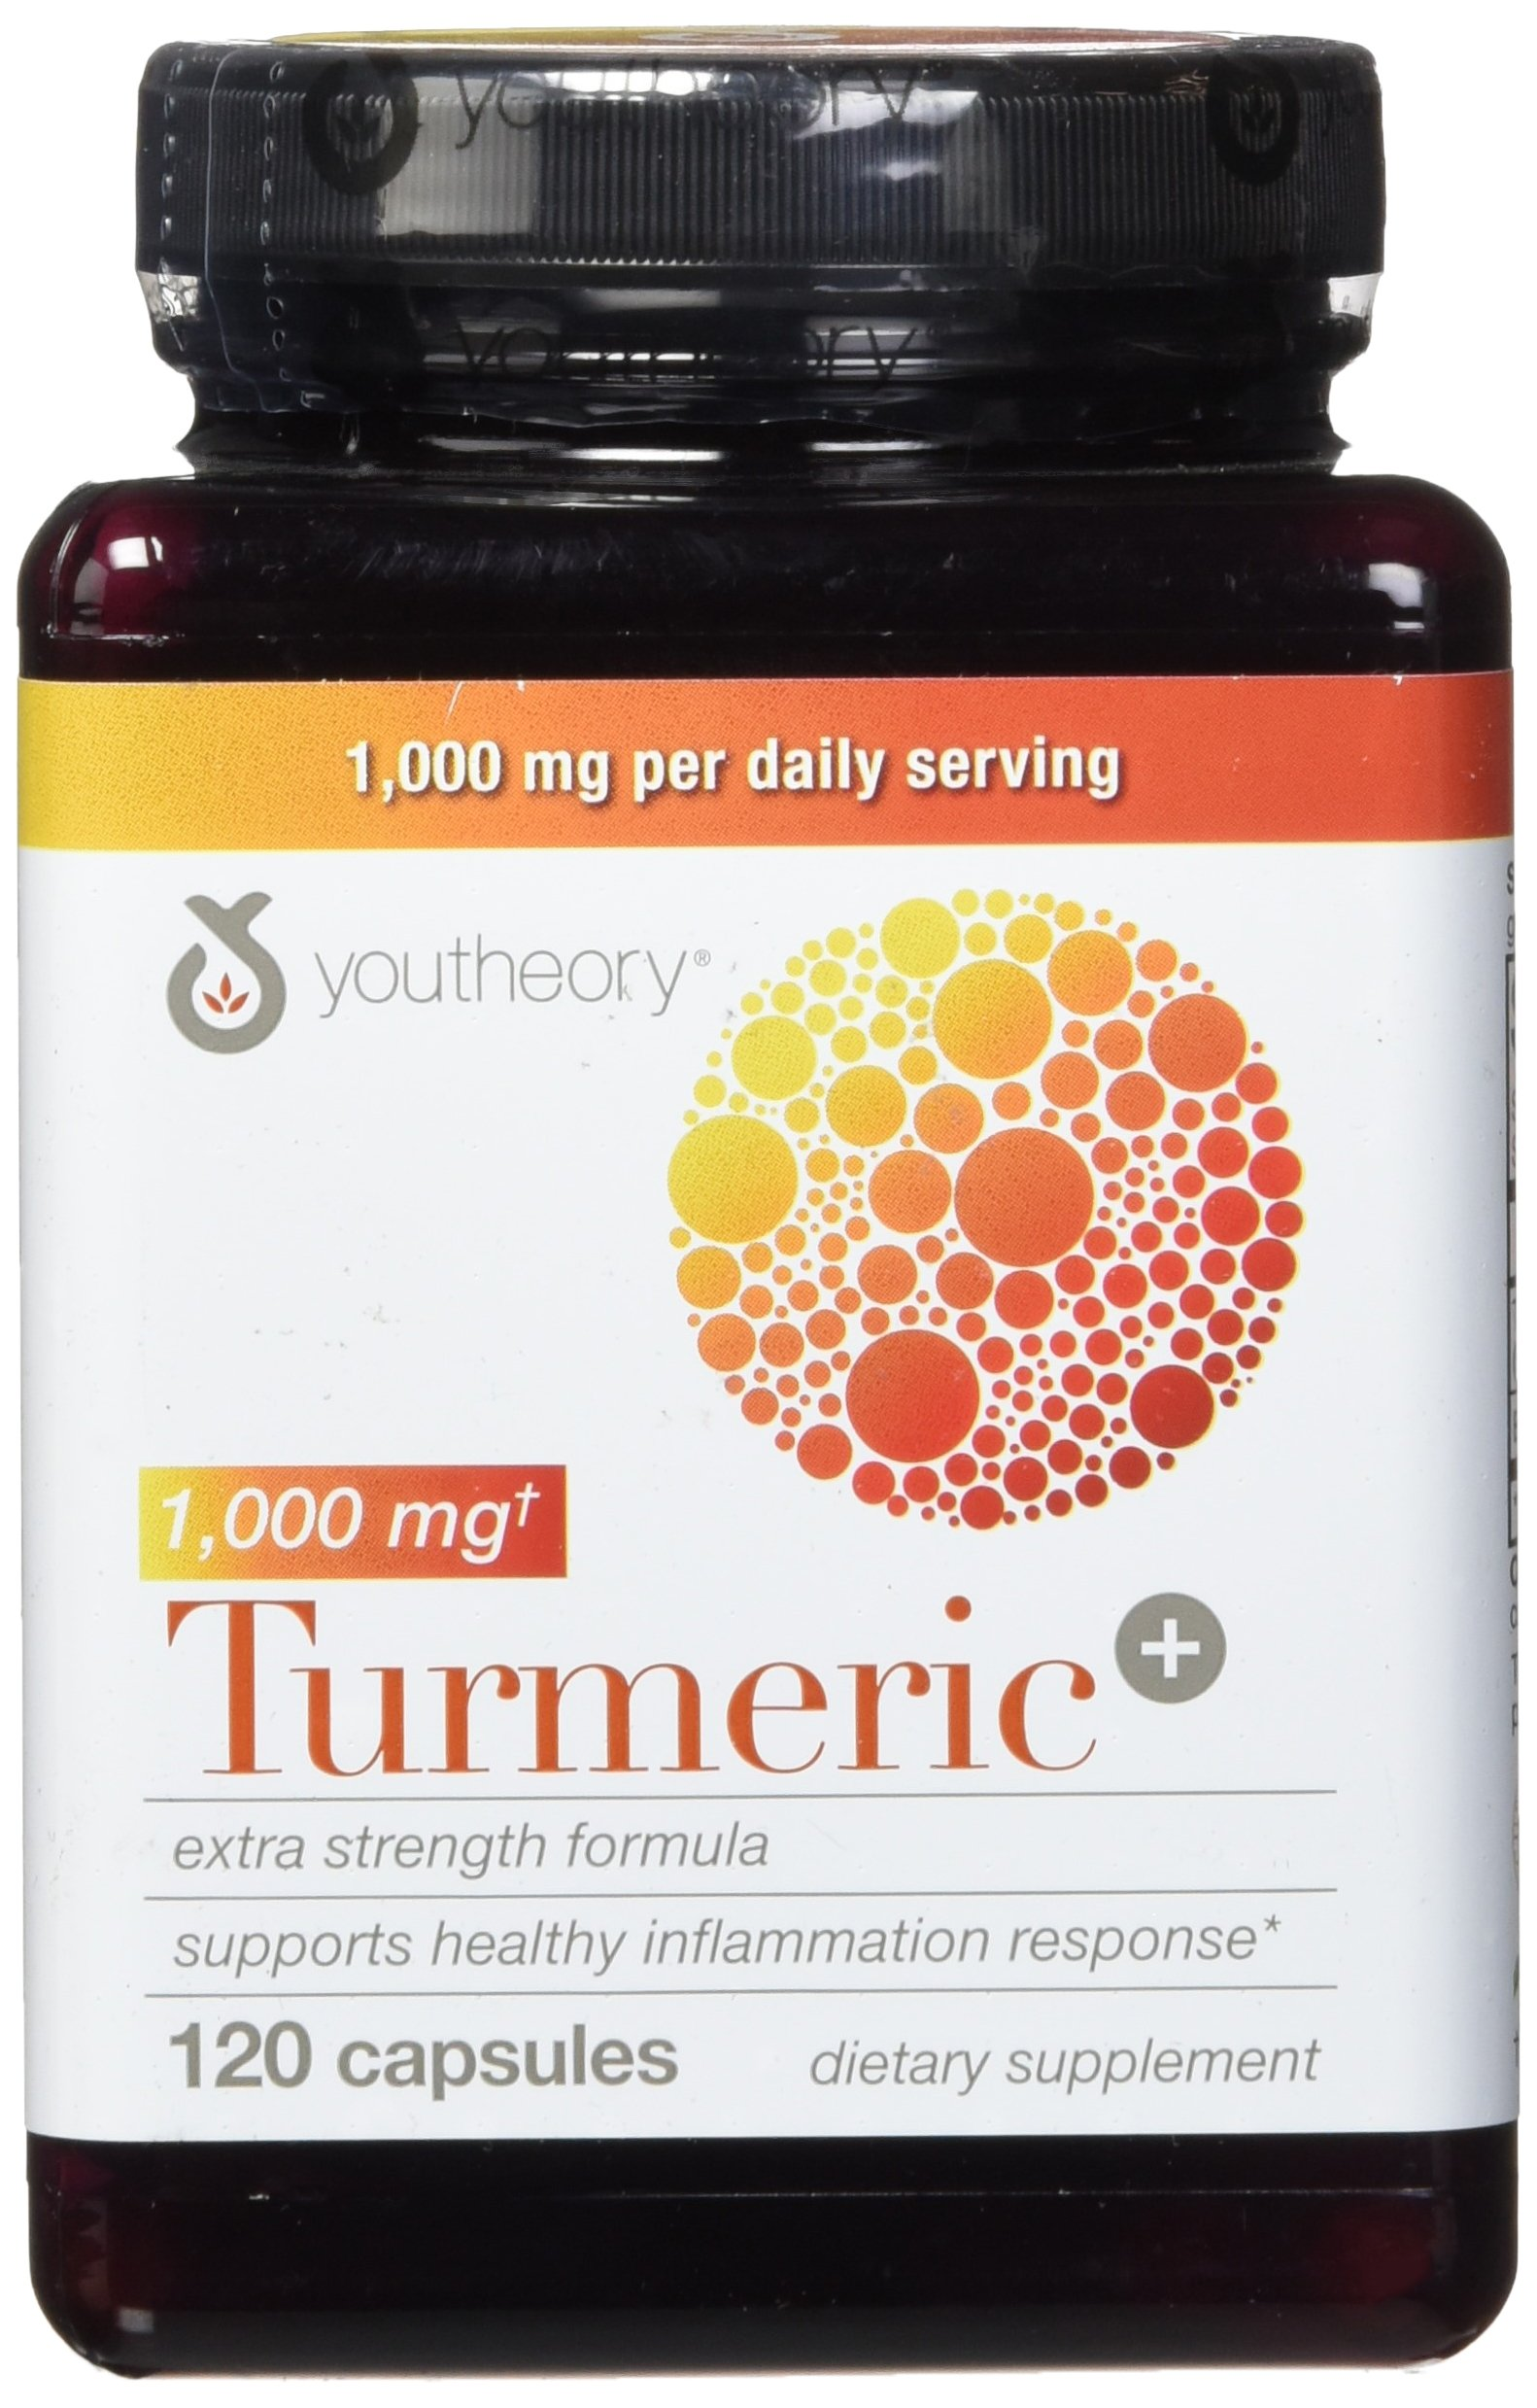 Youtheory Turmeric Extra Strength Formula Capsules 1,000 mg per Daily, 120 Count